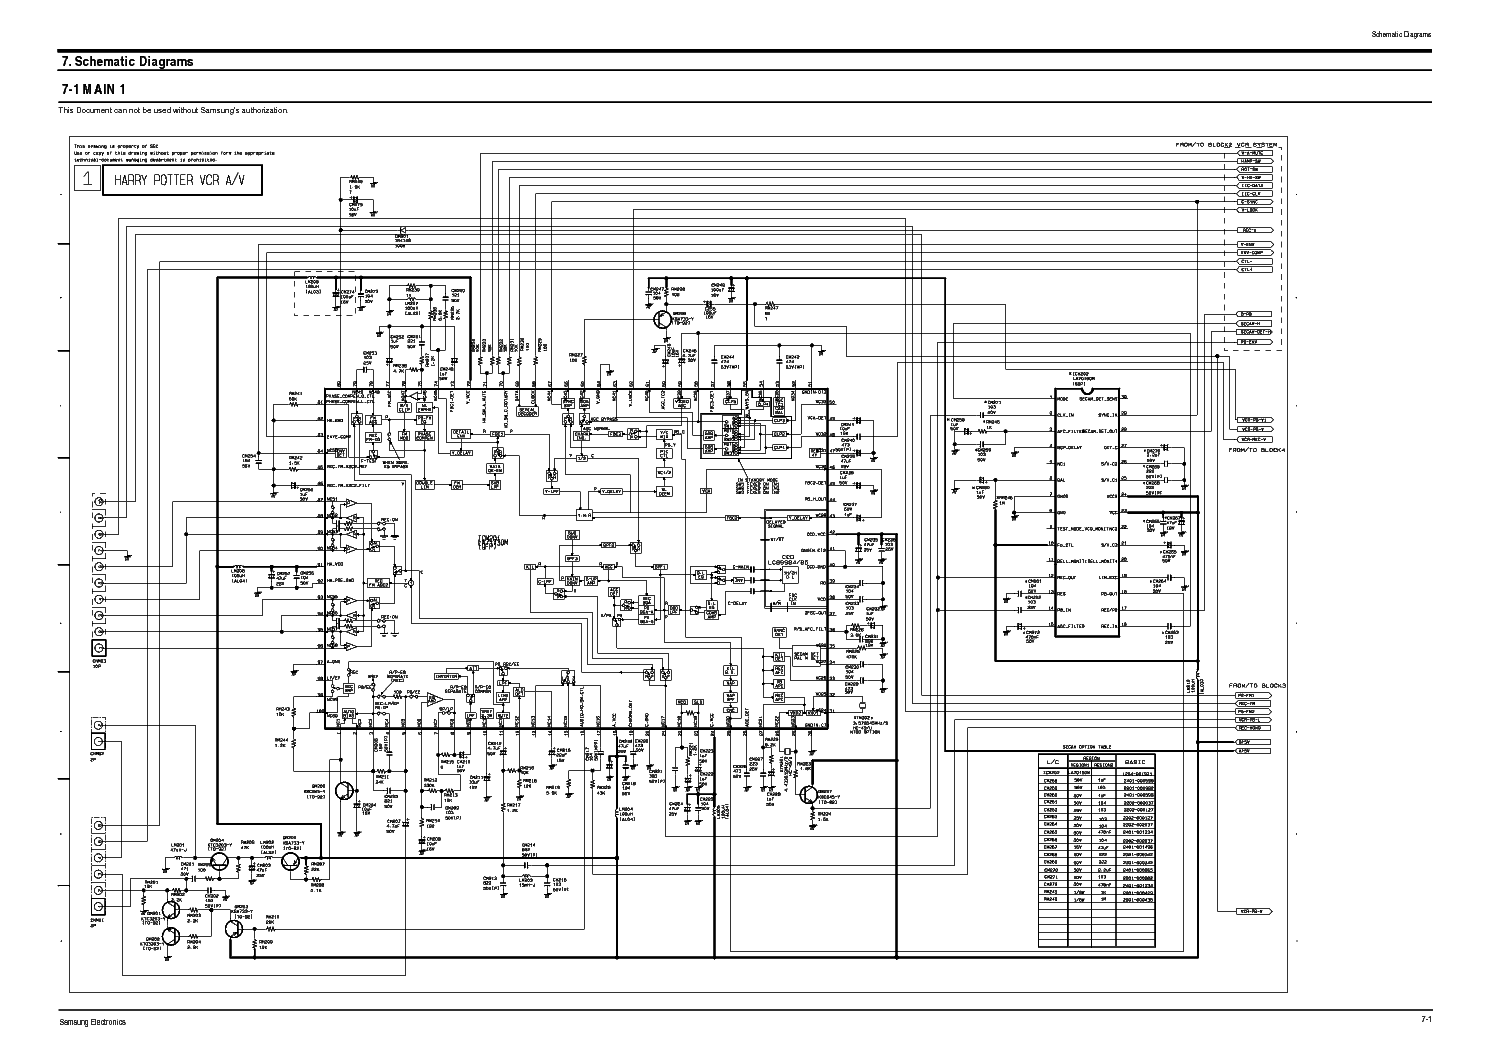 Samsung Uw28j10 Chassis C18a Service Manual Download Schematics Eeprom Repair Info For